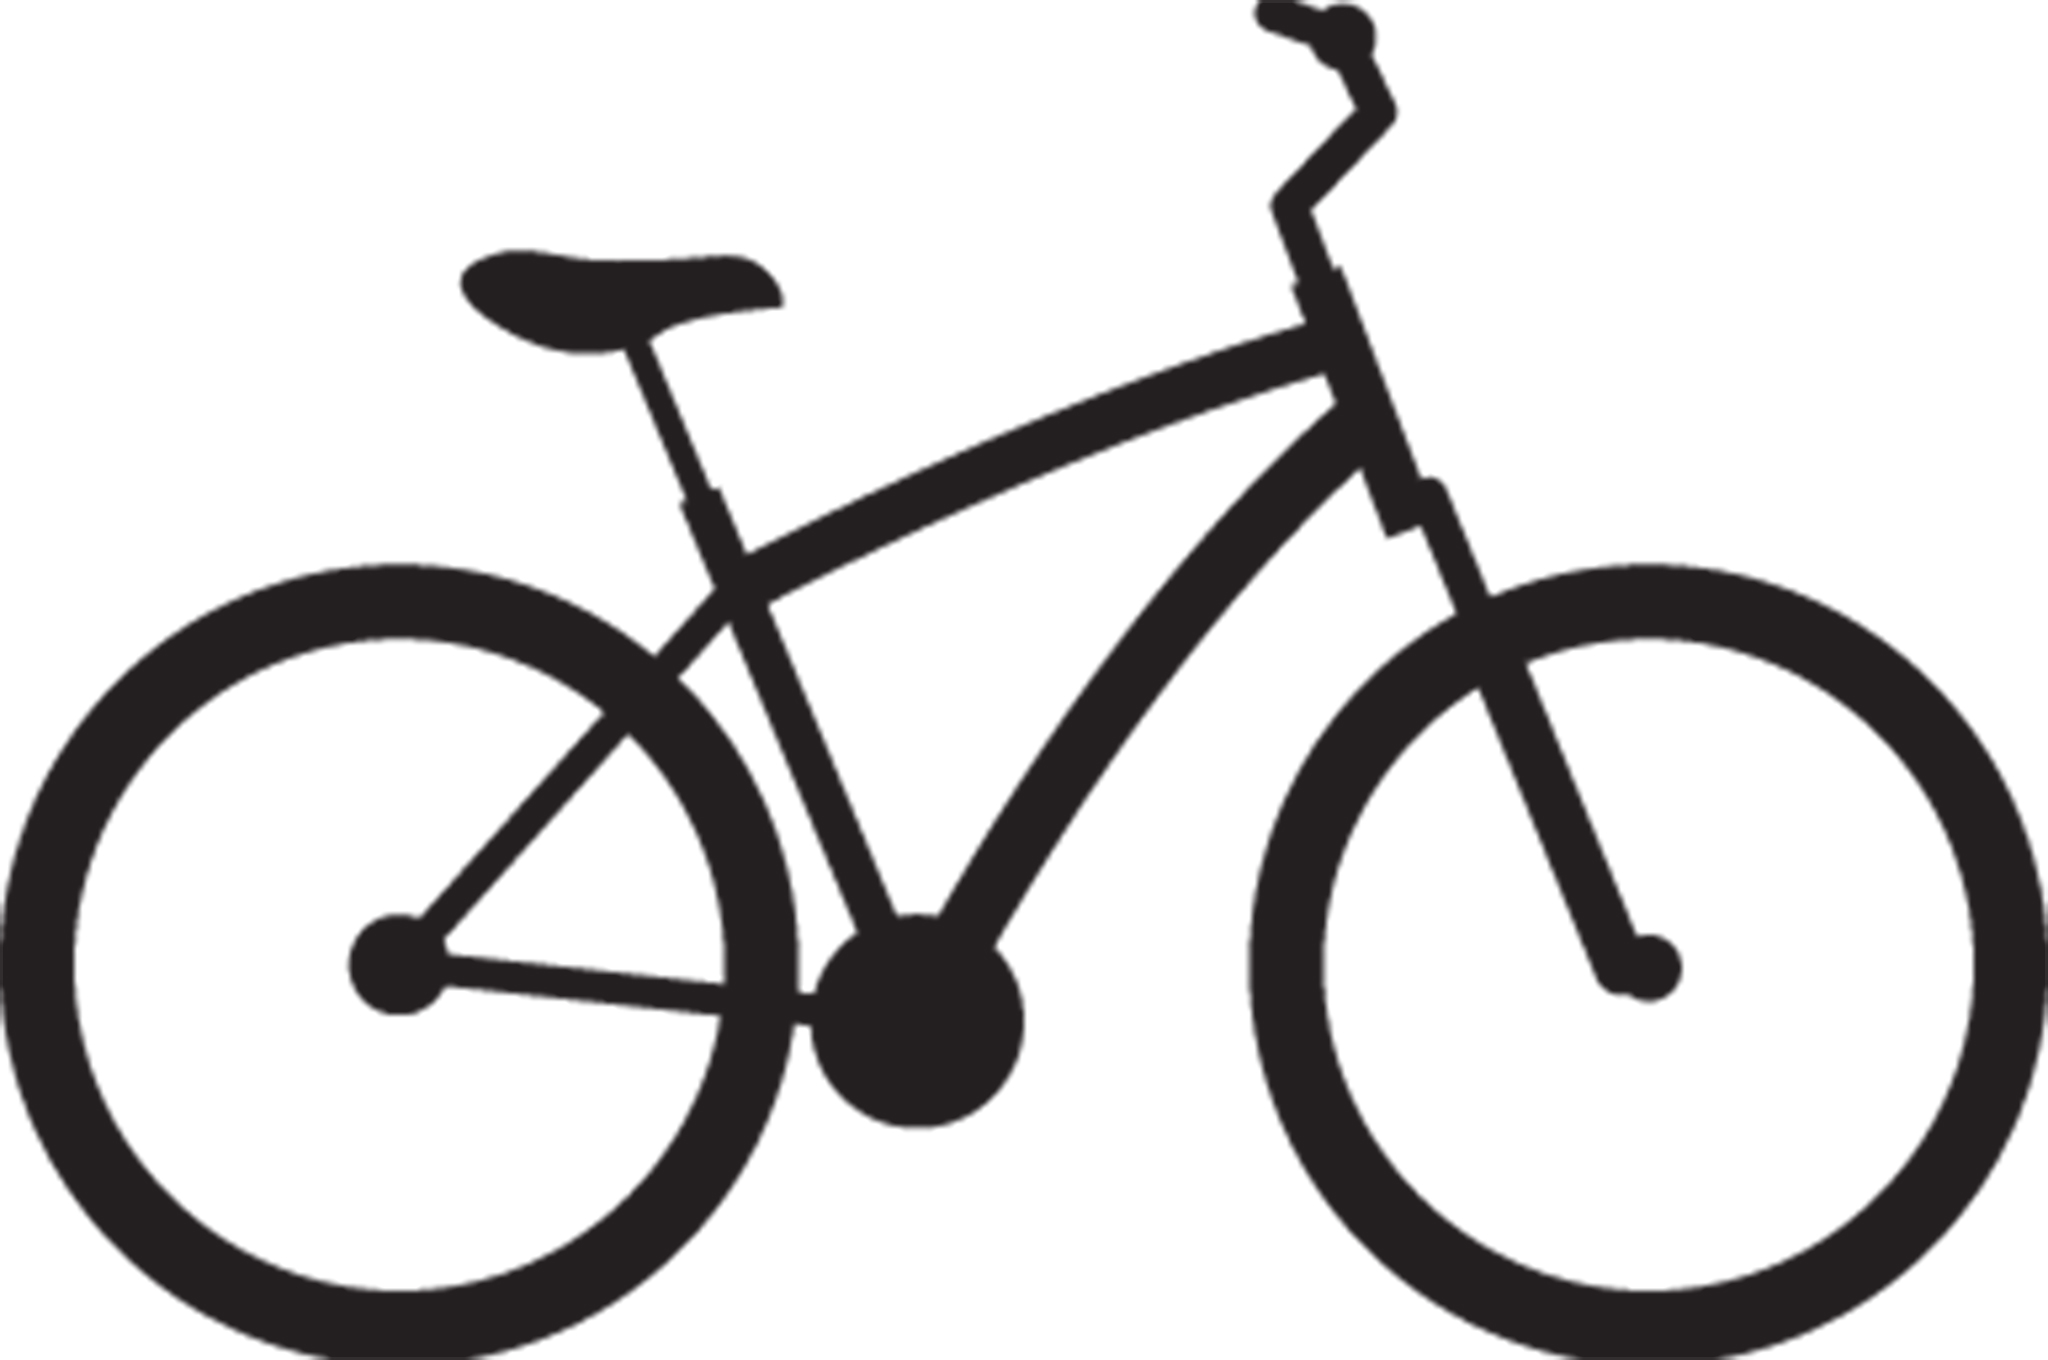 Free Bicycle Clipart hybrid bike, Download Free Clip Art on Owips.com.